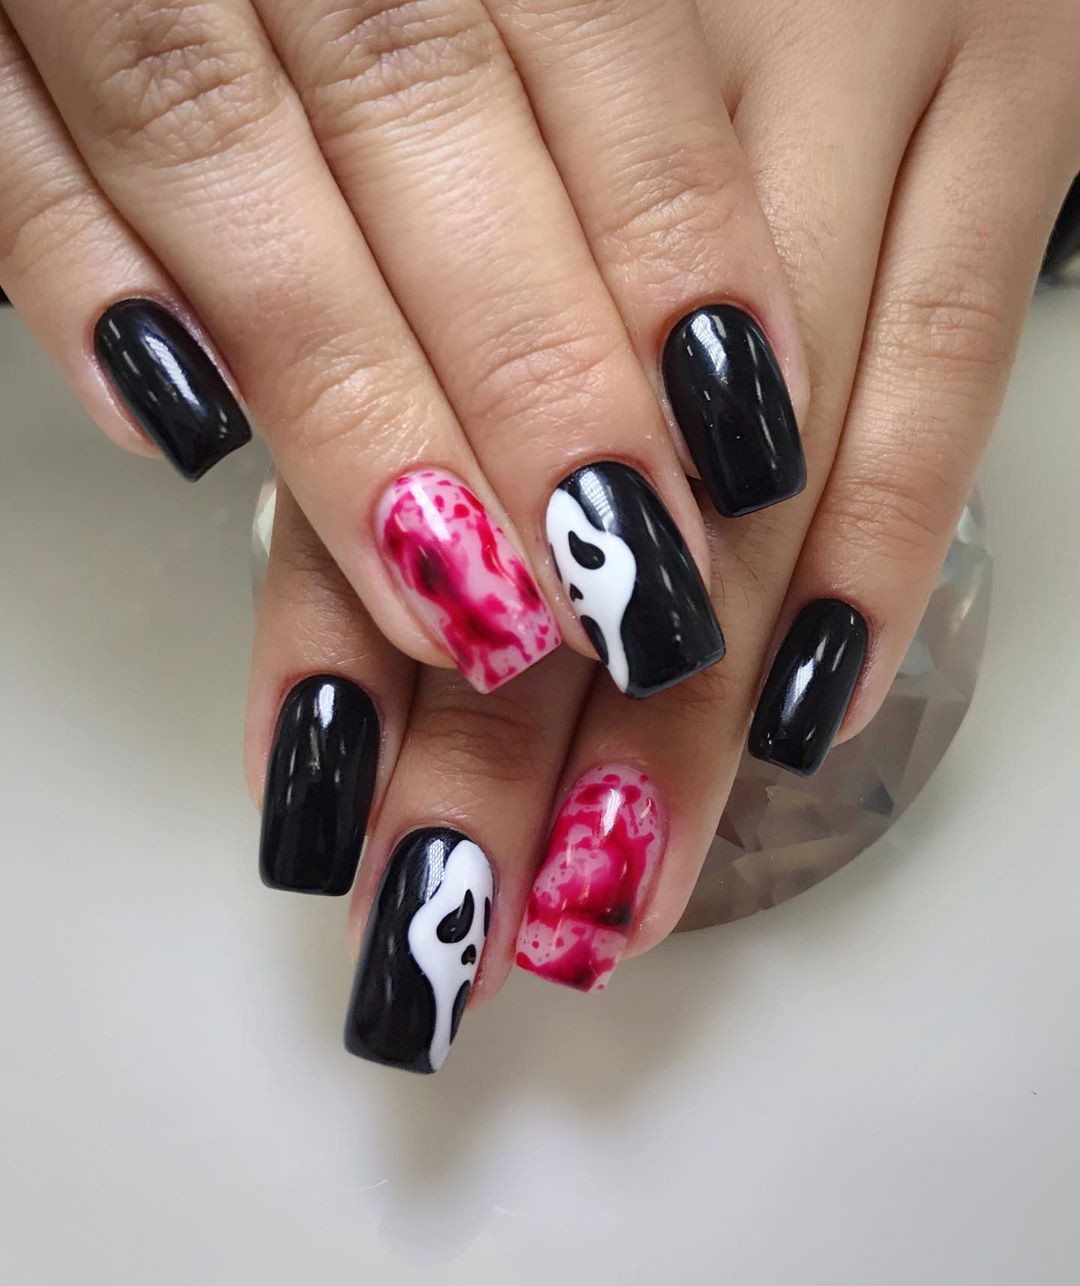 52 Pretty Nail Art Designs for Short Acrylic Nails